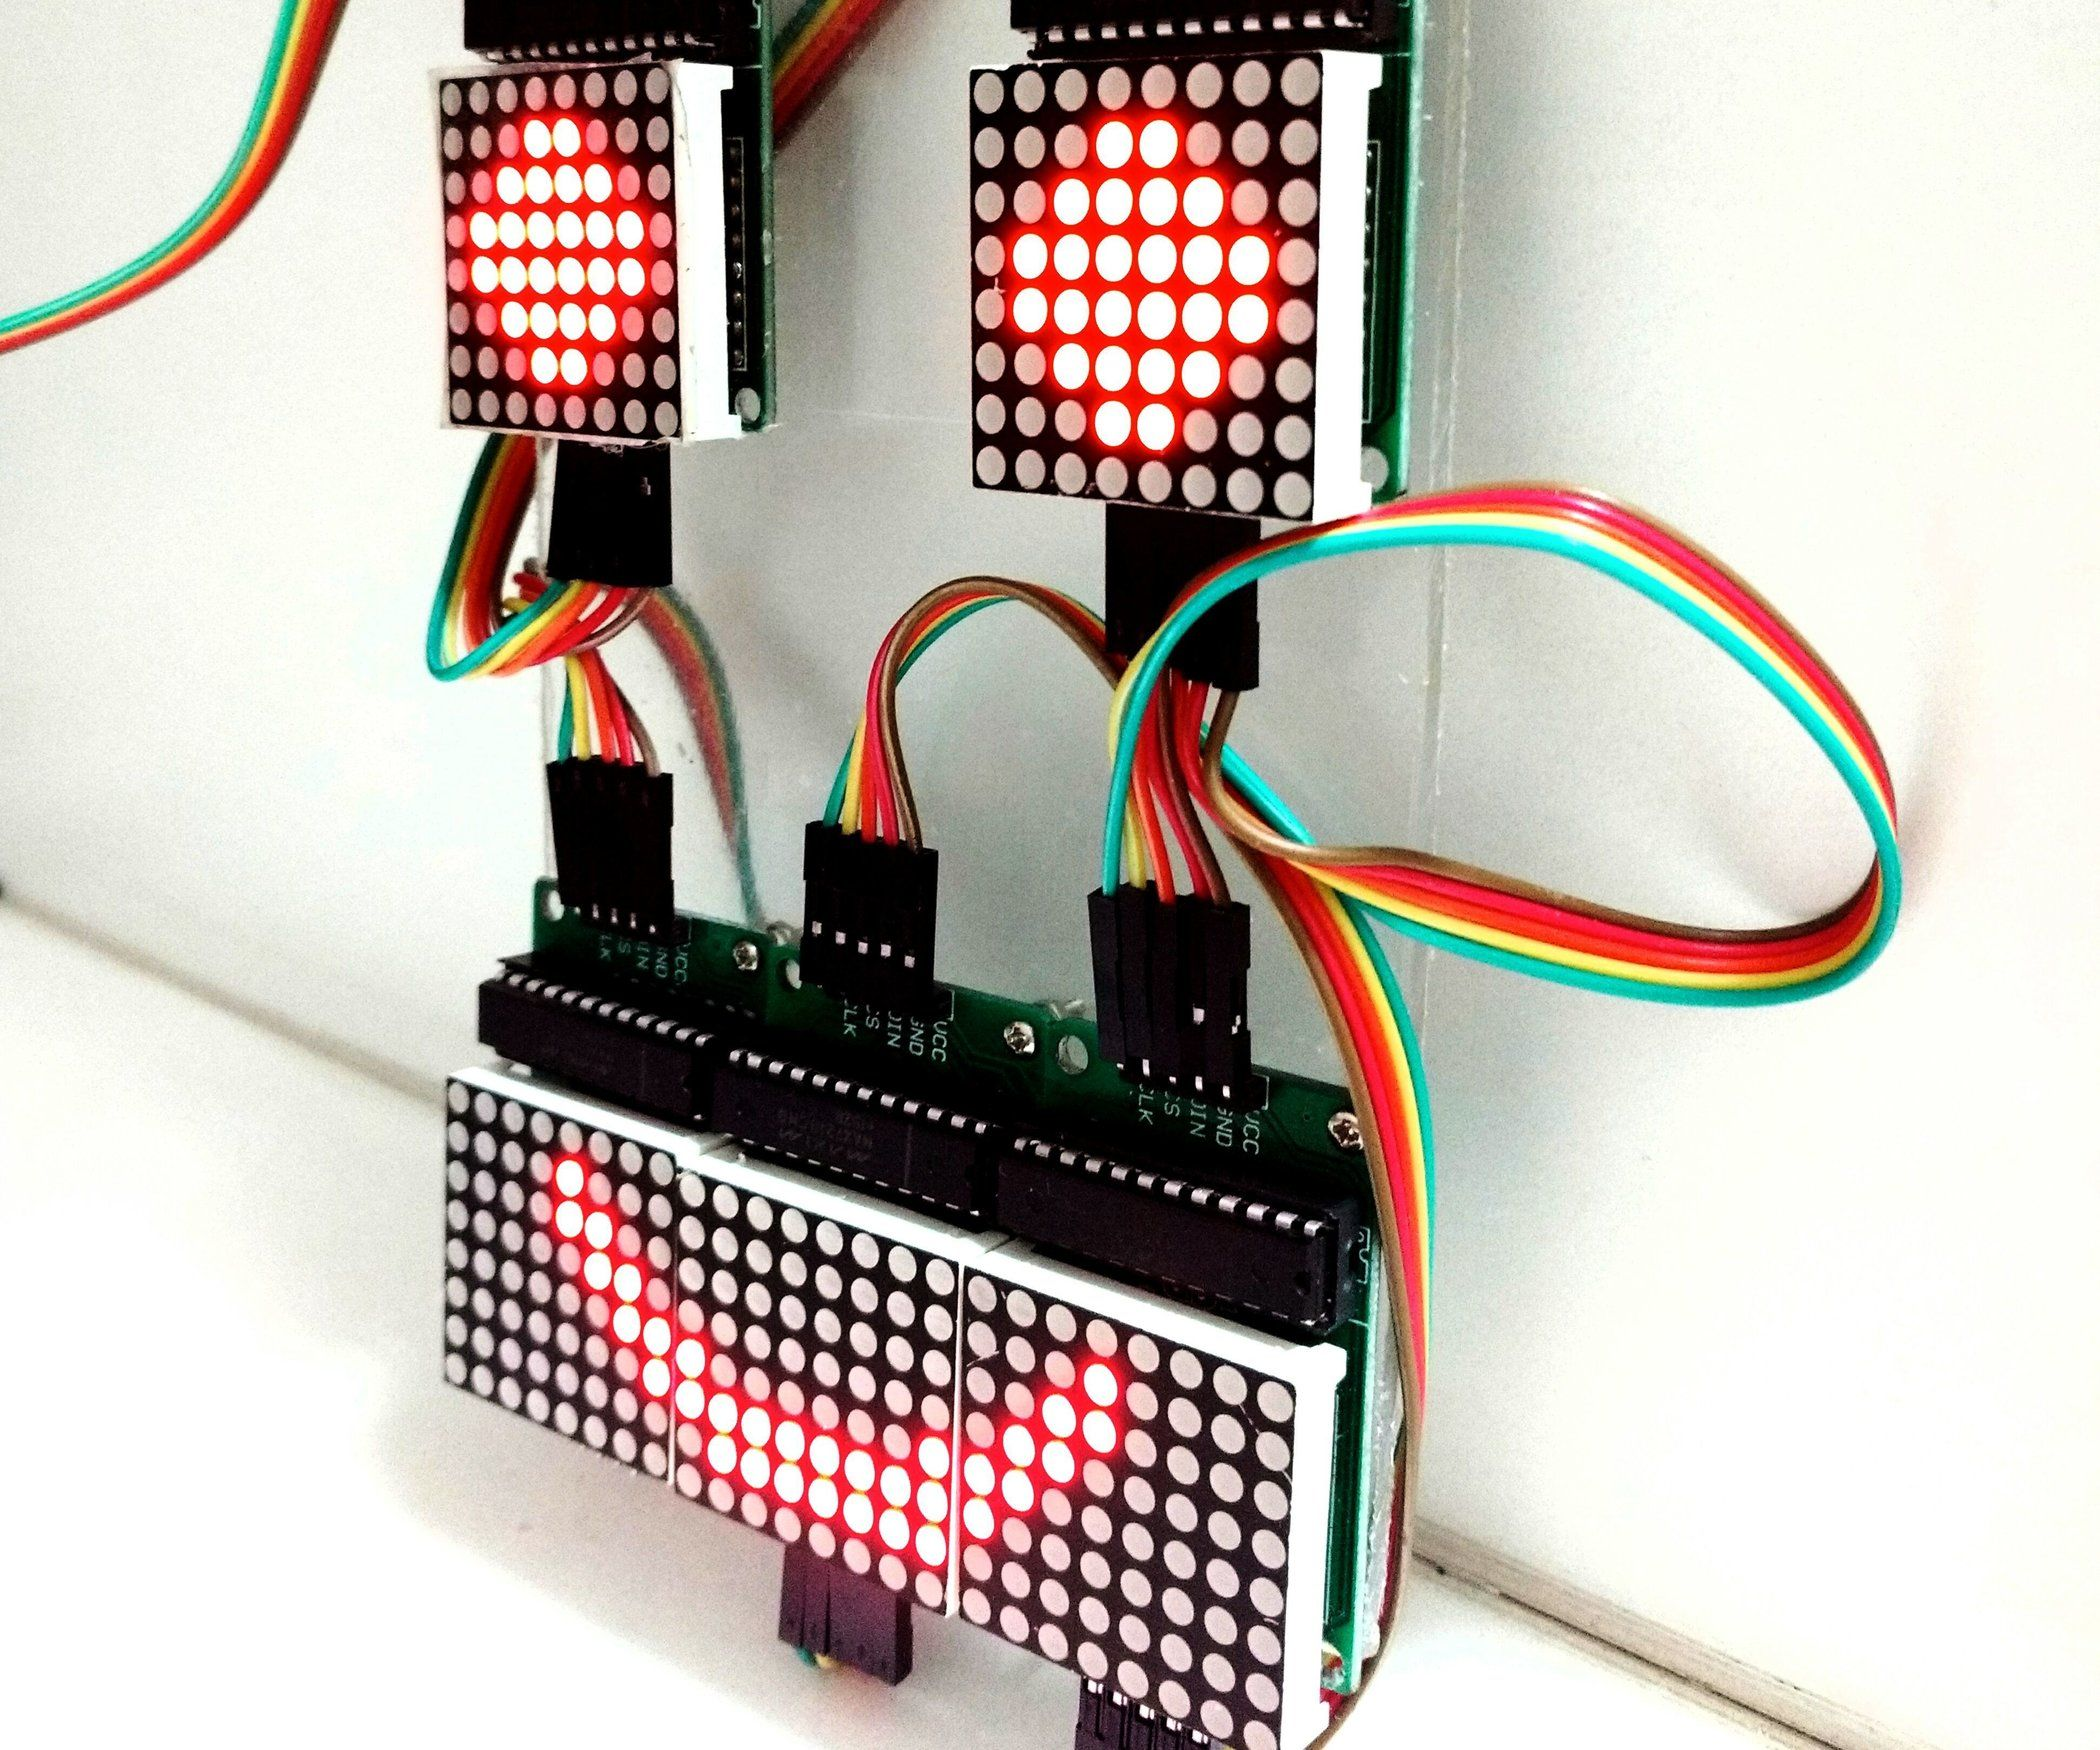 Controlling Led Matrix Array With Arduino Uno Powered Robot Duemilanove Power Circuit How Does It Work Adafruit This Instructable Shows To Control An Of 8x8 Matrices Using Guide Might Be Used Create A Simple And Relatively Cheap